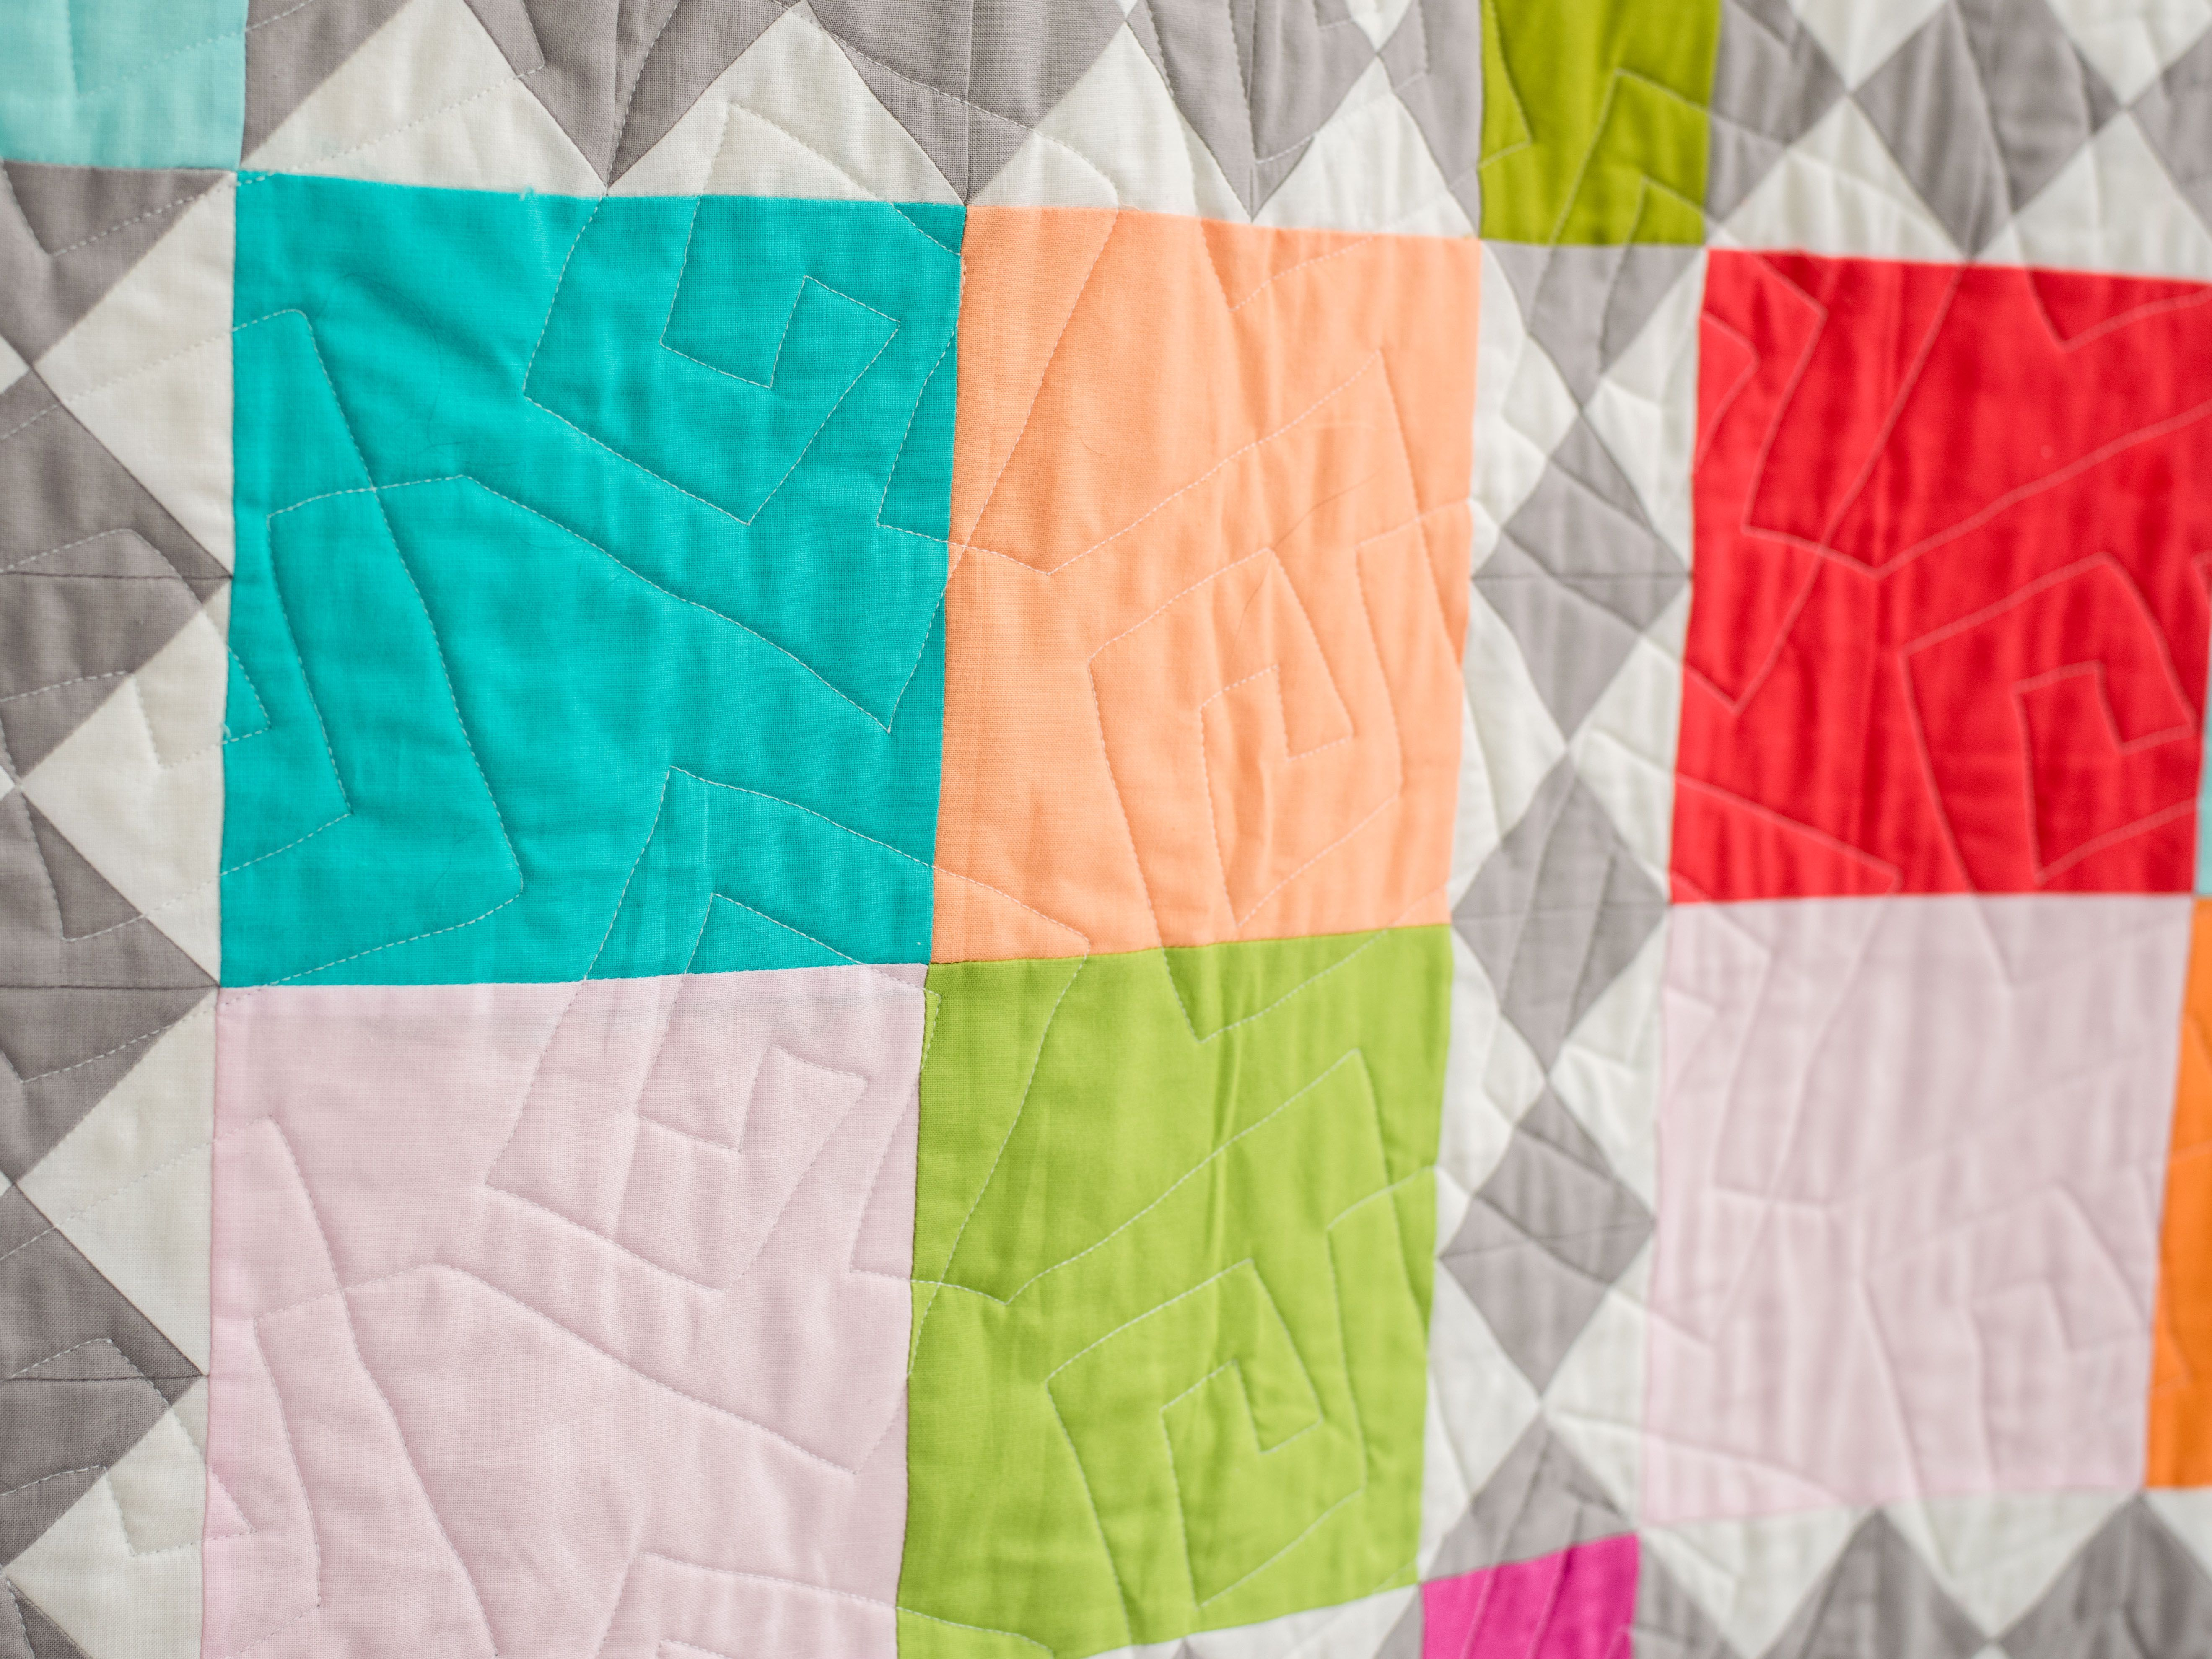 These Simple Free Motion Quilting Designs Are Perfect For